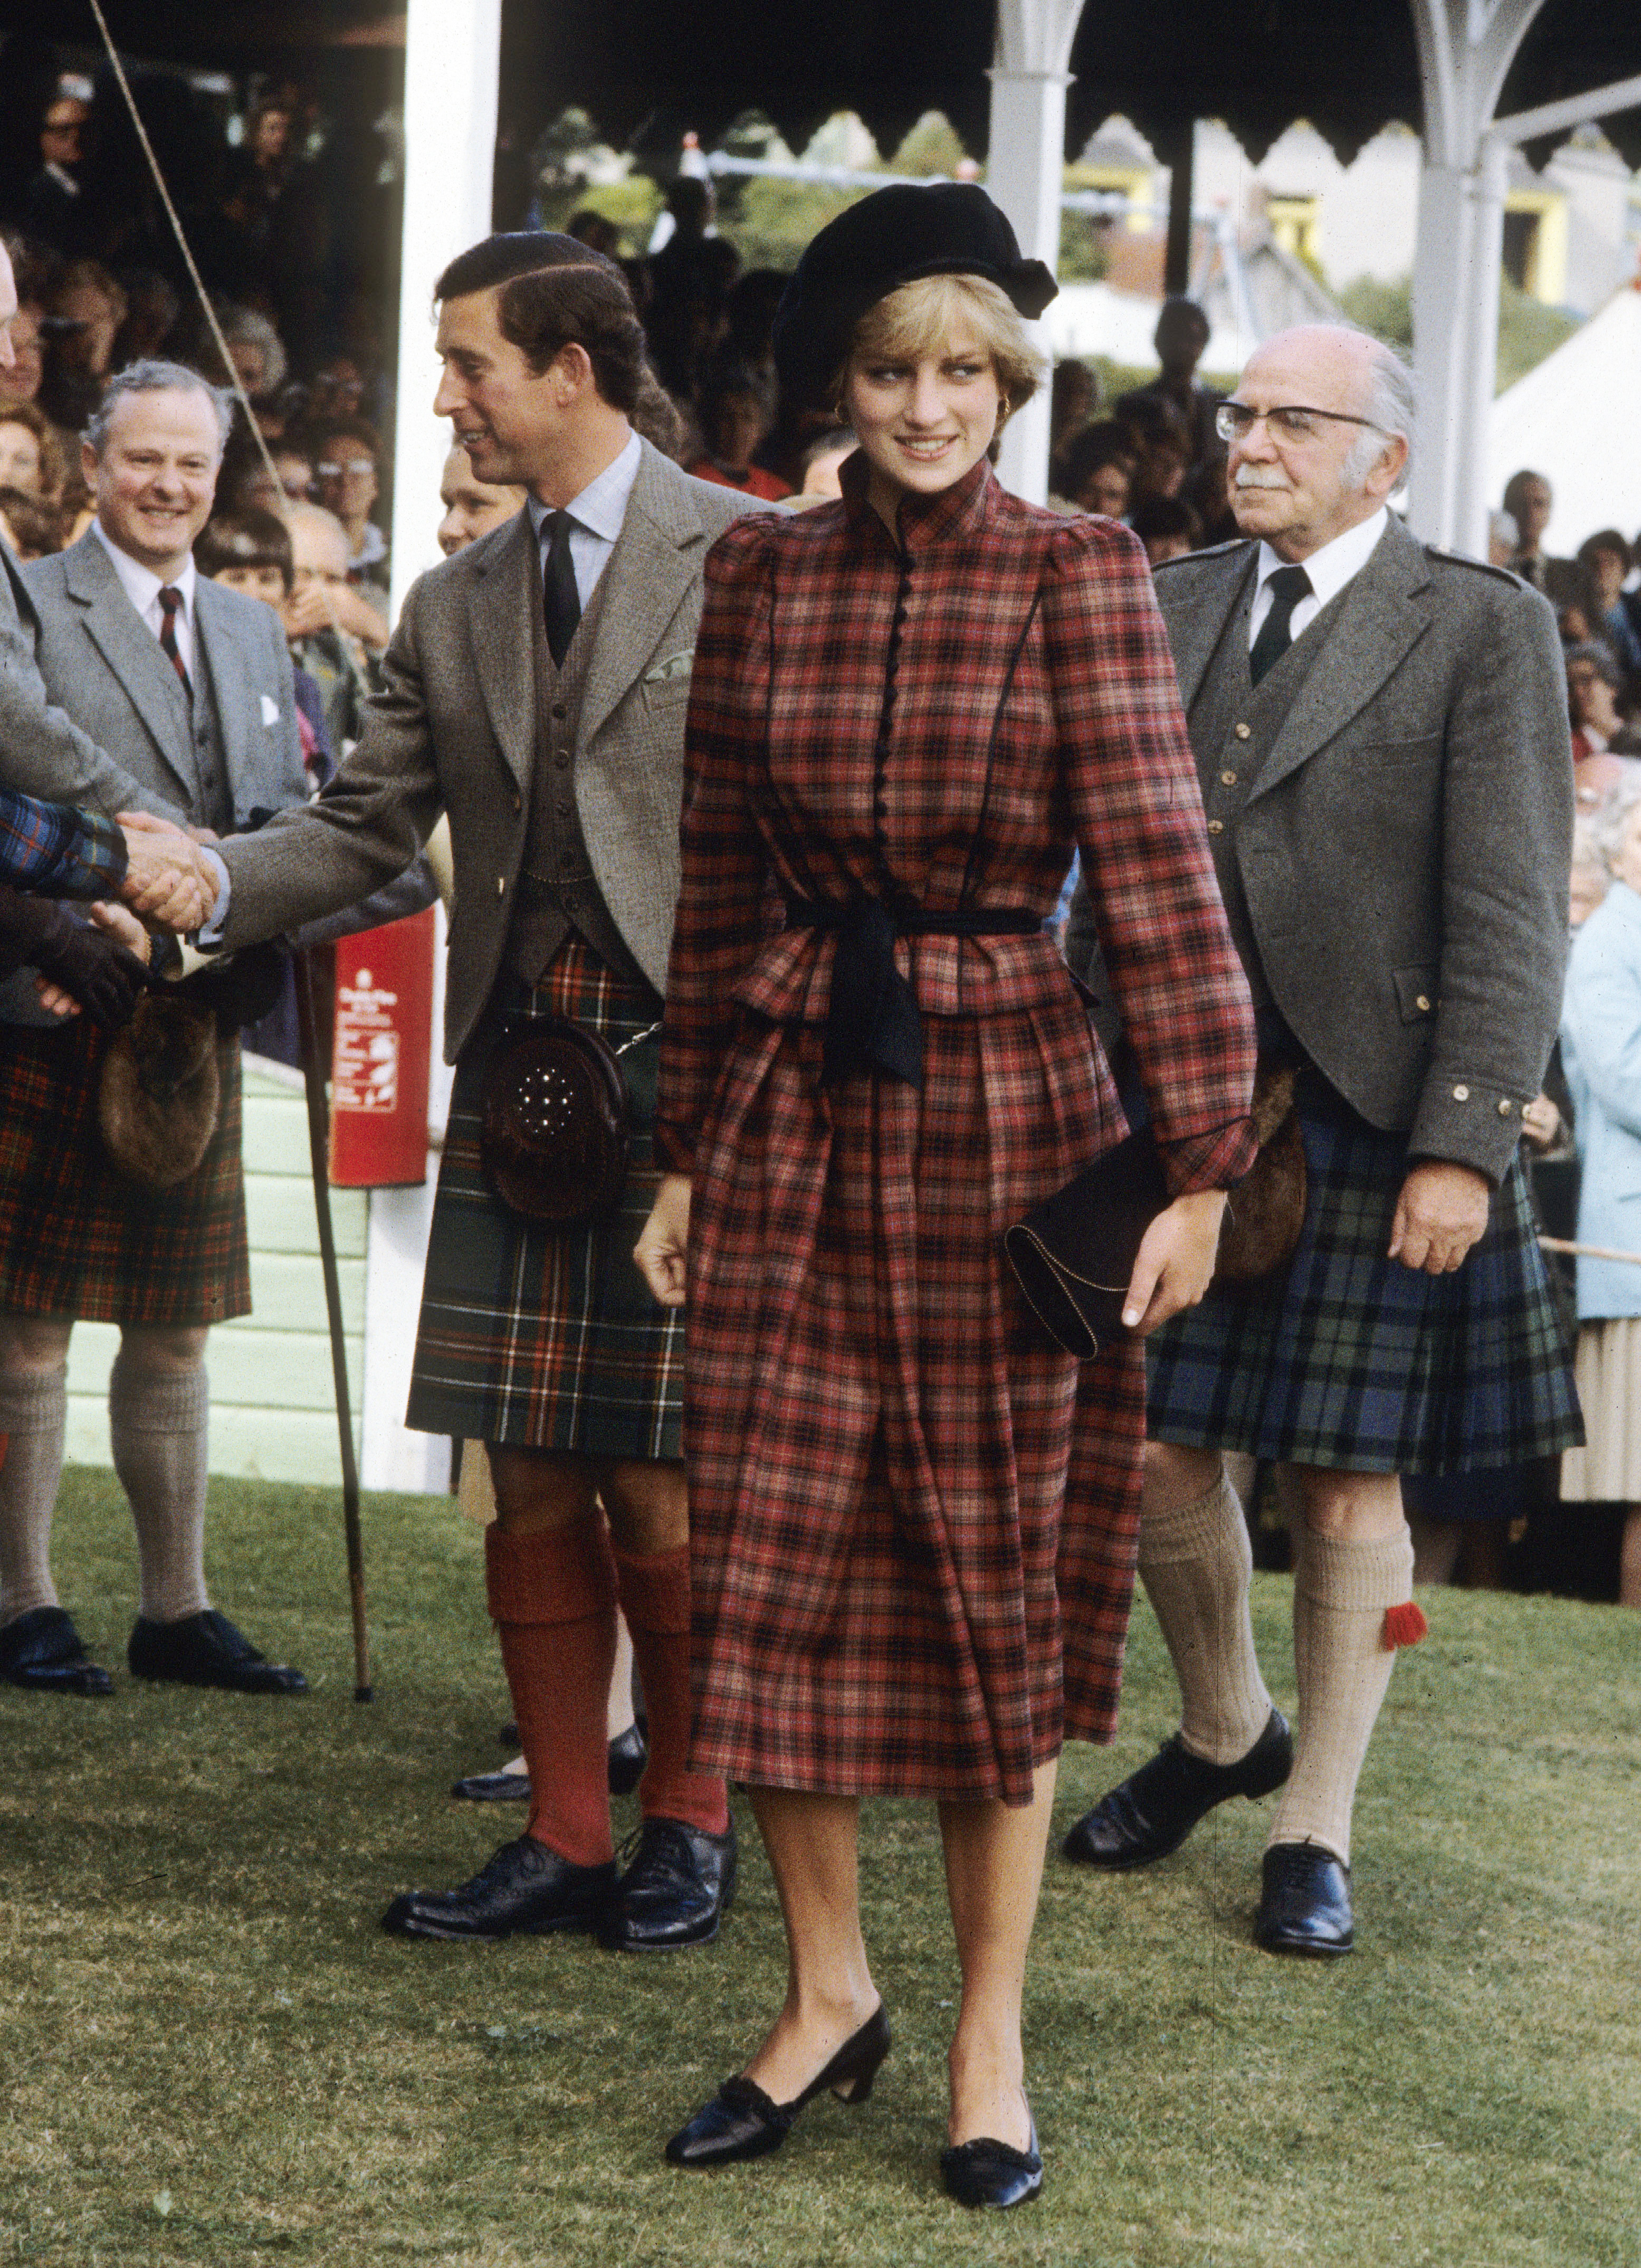 For the Braemar Games in September 1981, Diana sported a tartan outfit by Caroline Charles.